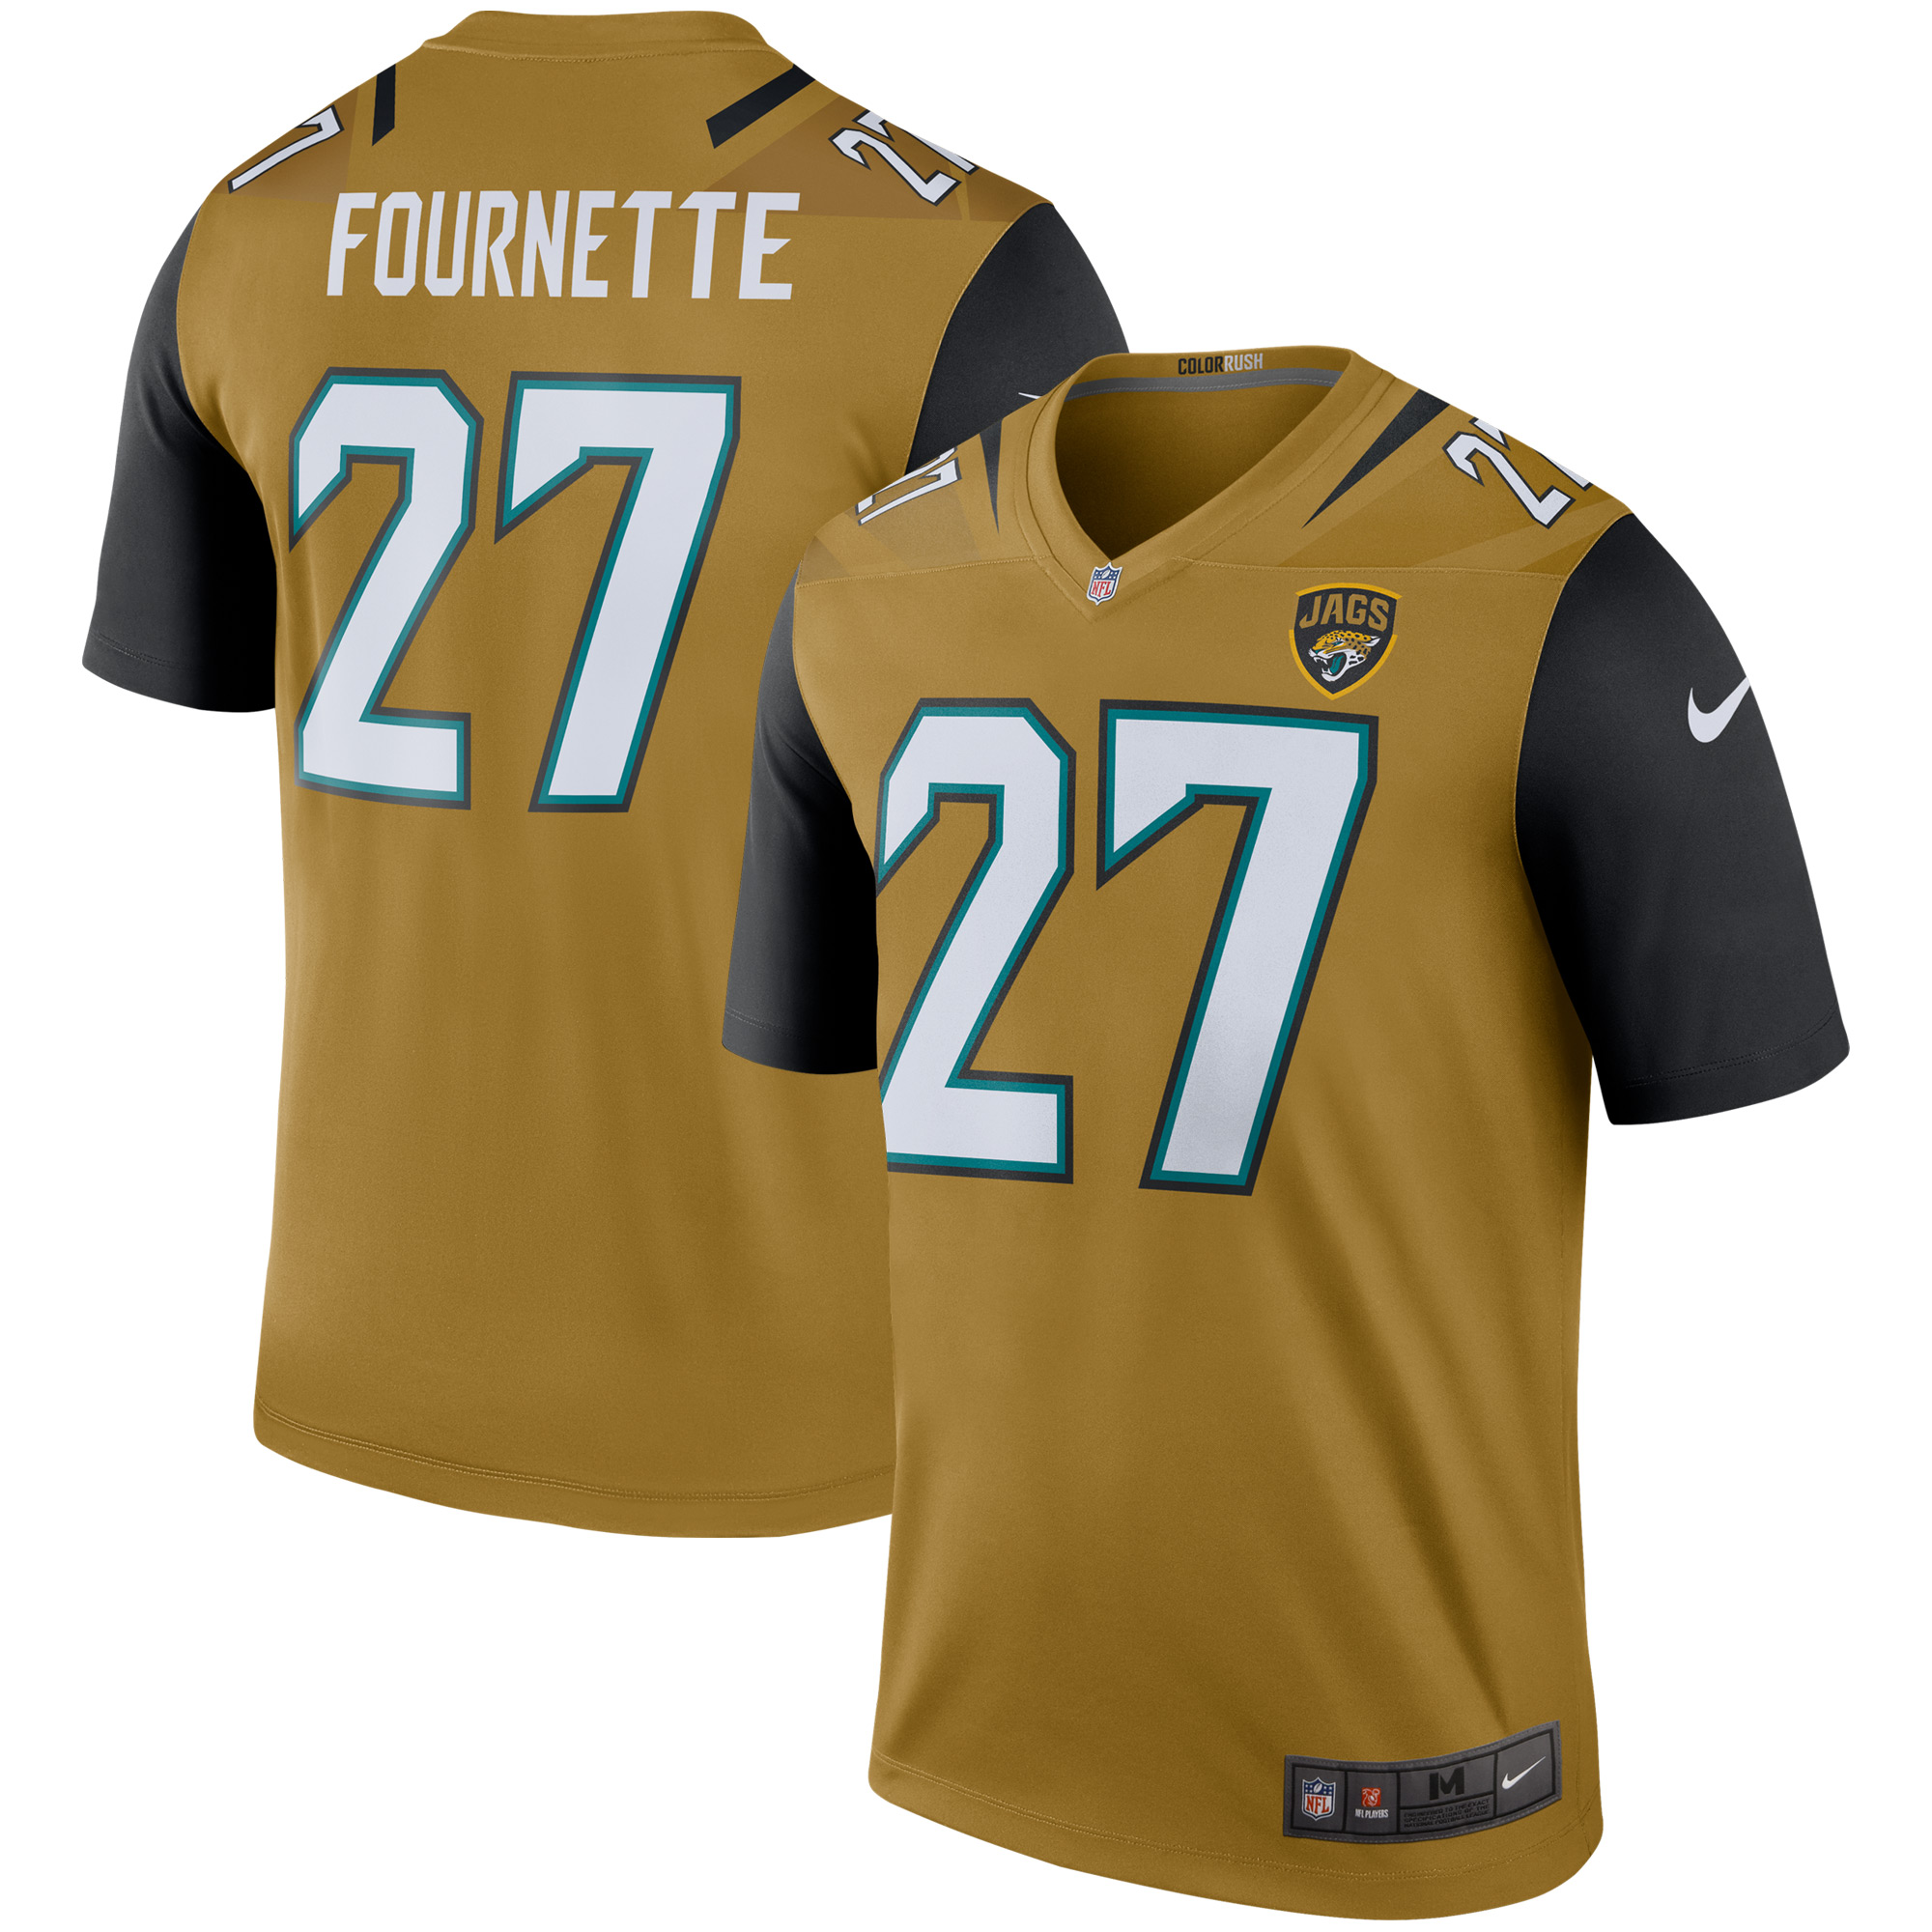 innovative design d0795 23e8d Men's Nike Leonard Fournette Gold Jacksonville Jaguars Color Rush Legend  Jersey